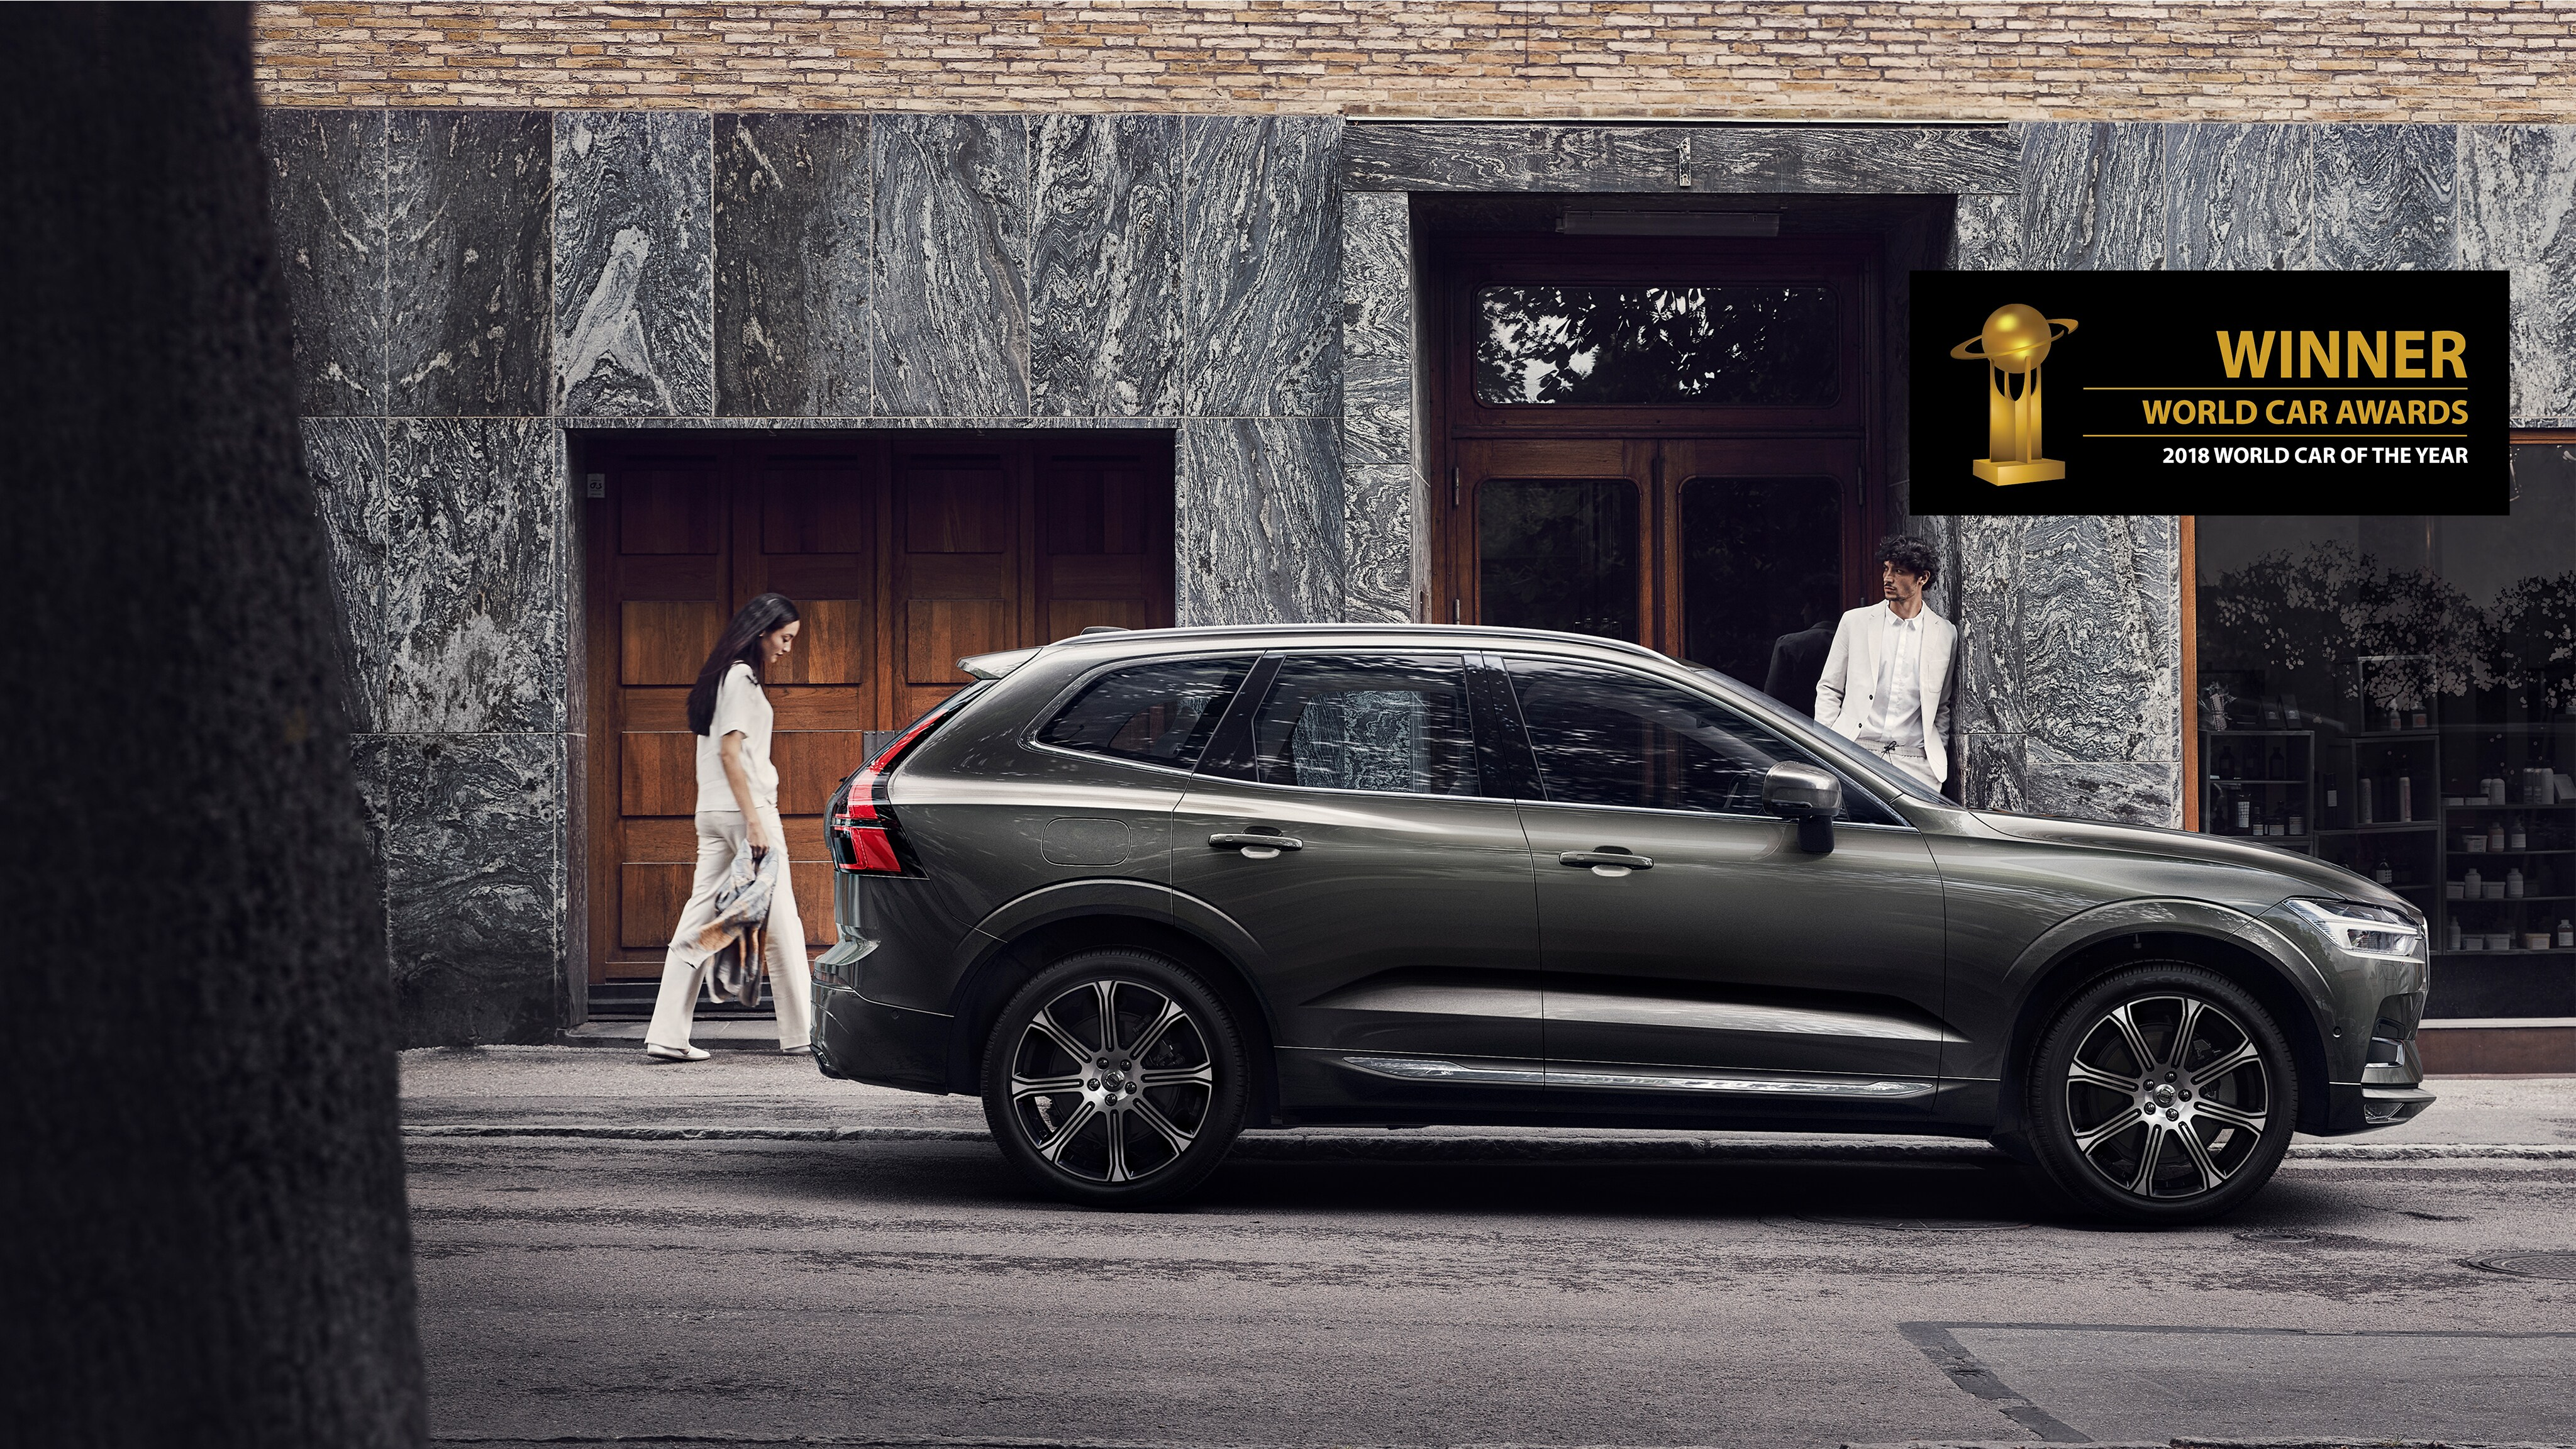 The New Volvo XC60 parked on the street